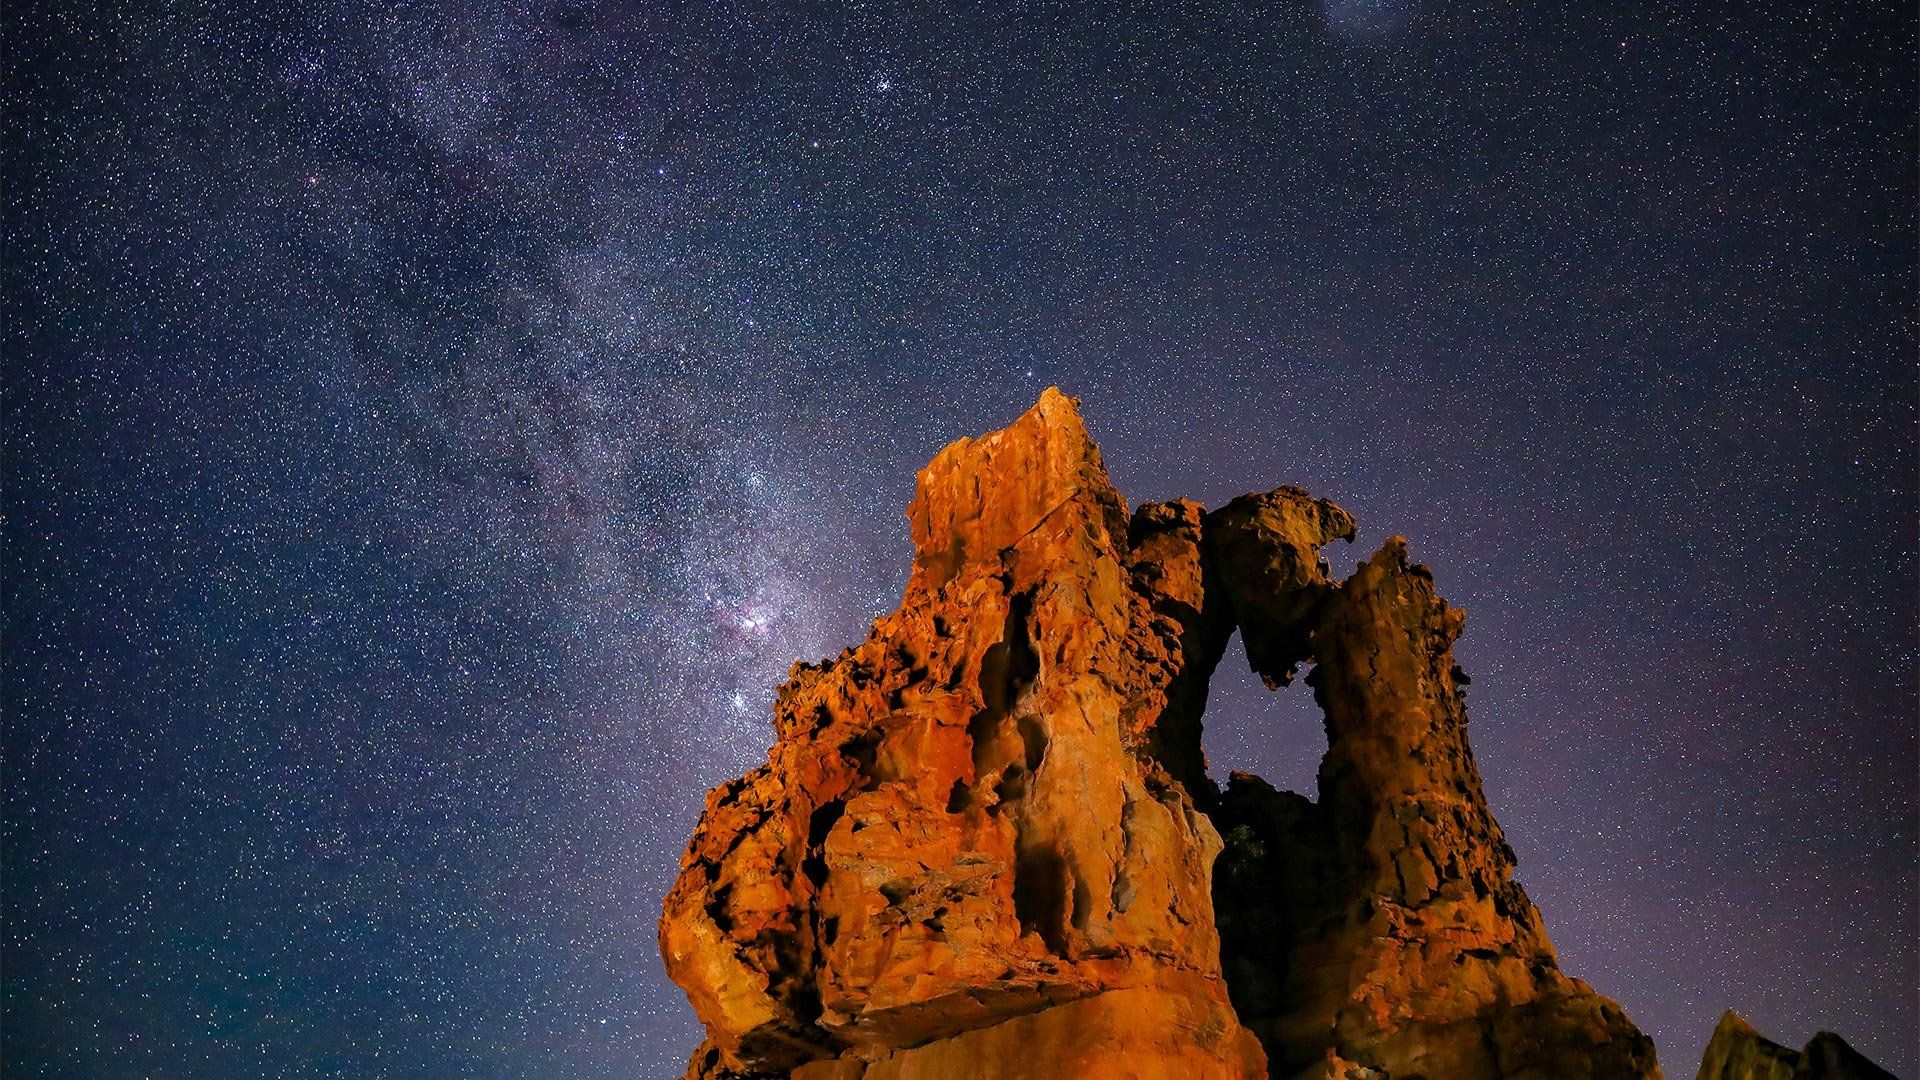 A rock formation standing stark against a sky filled with stars.